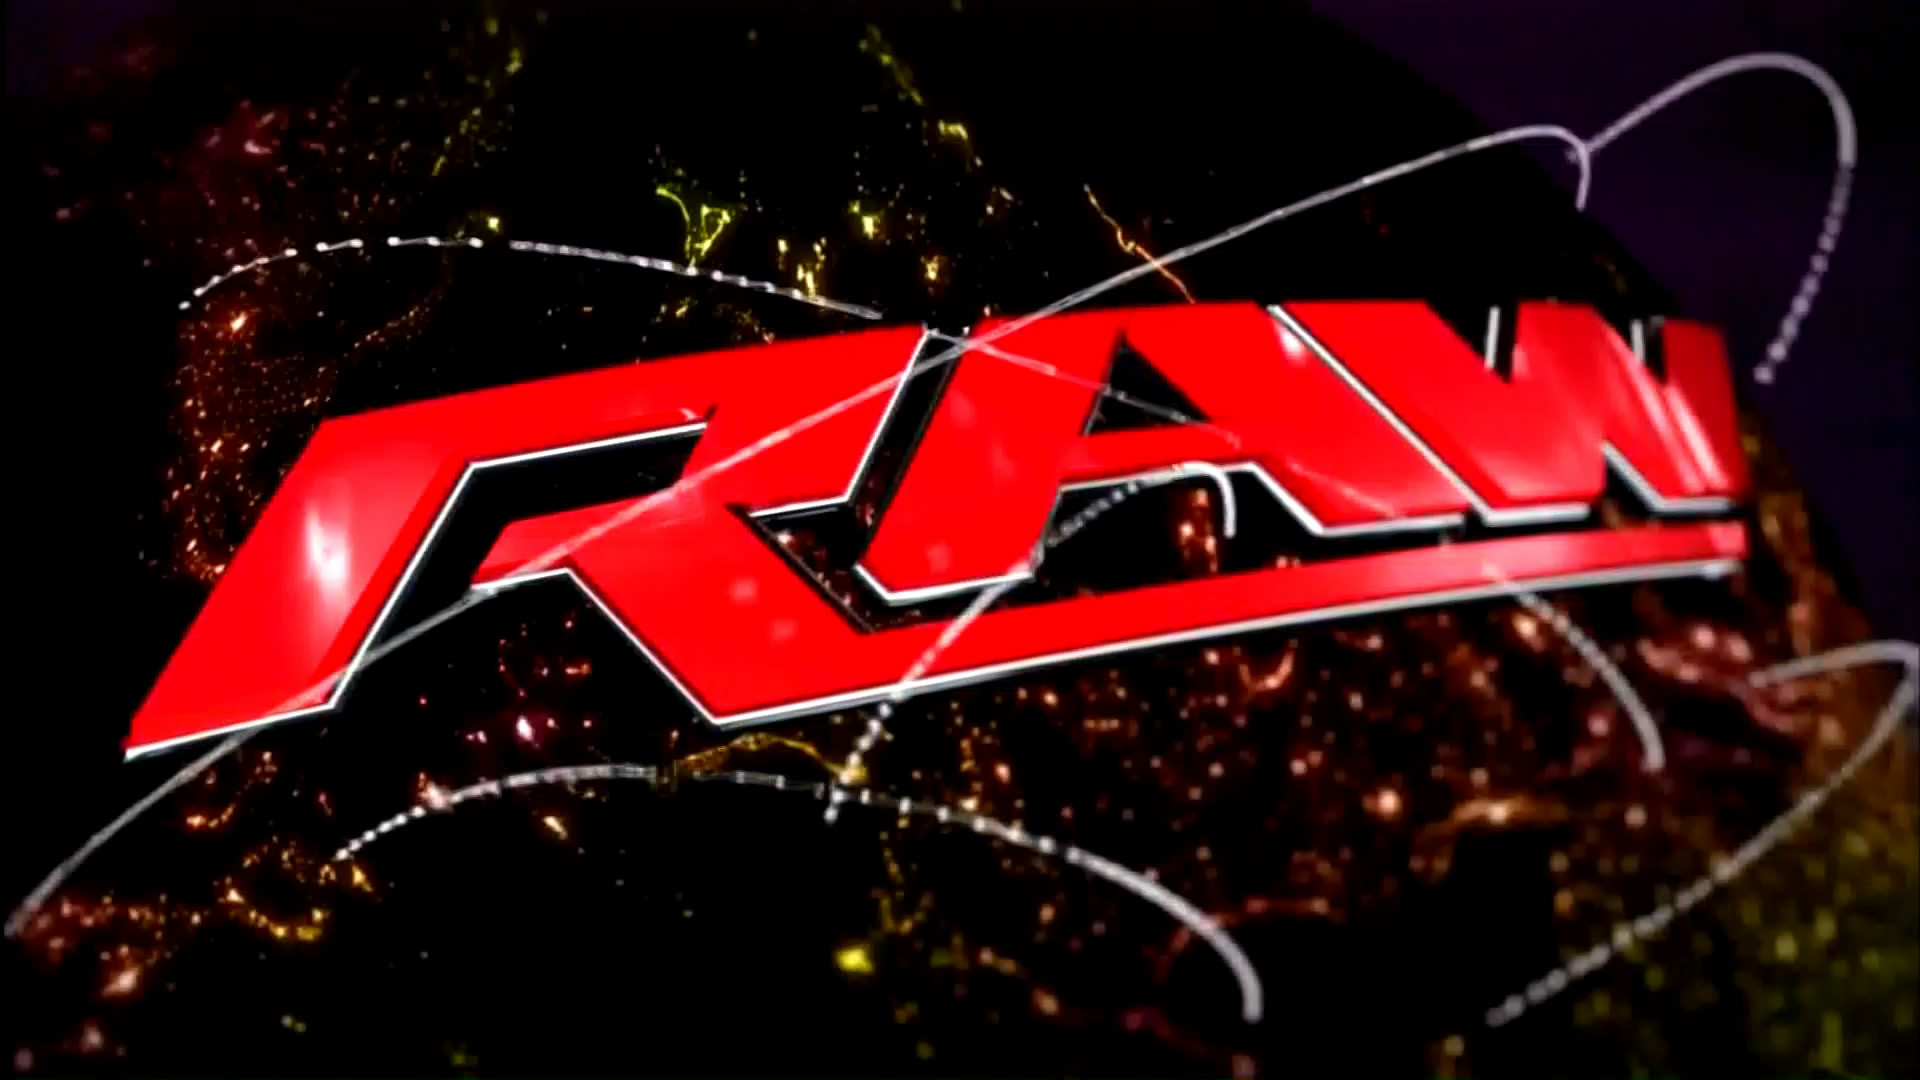 1920x1080 WWE Raw Wallpapers